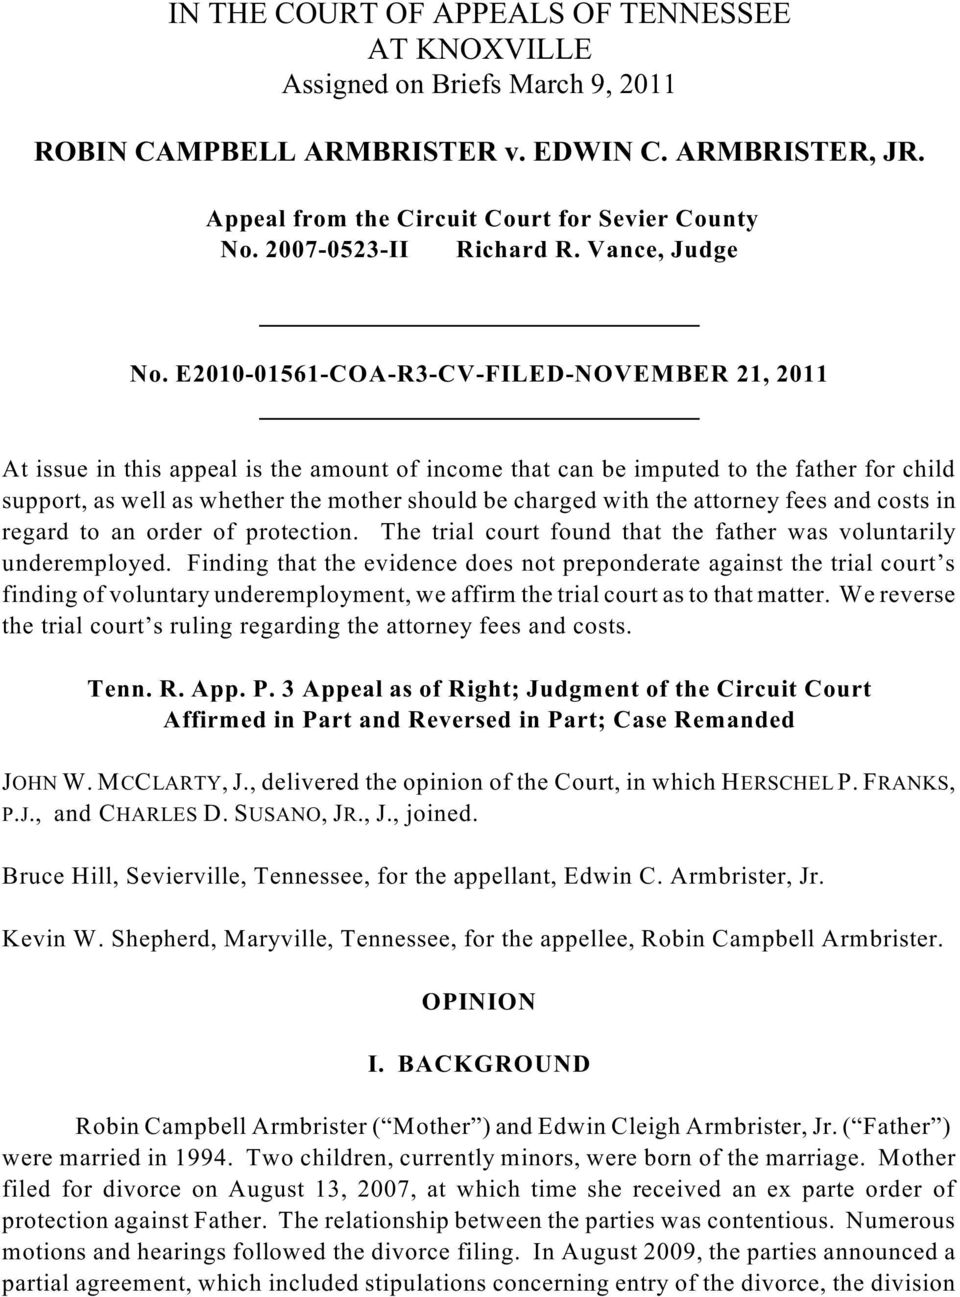 E2010-01561-COA-R3-CV-FILED-NOVEMBER 21, 2011 At issue in this appeal is the amount of income that can be imputed to the father for child support, as well as whether the mother should be charged with